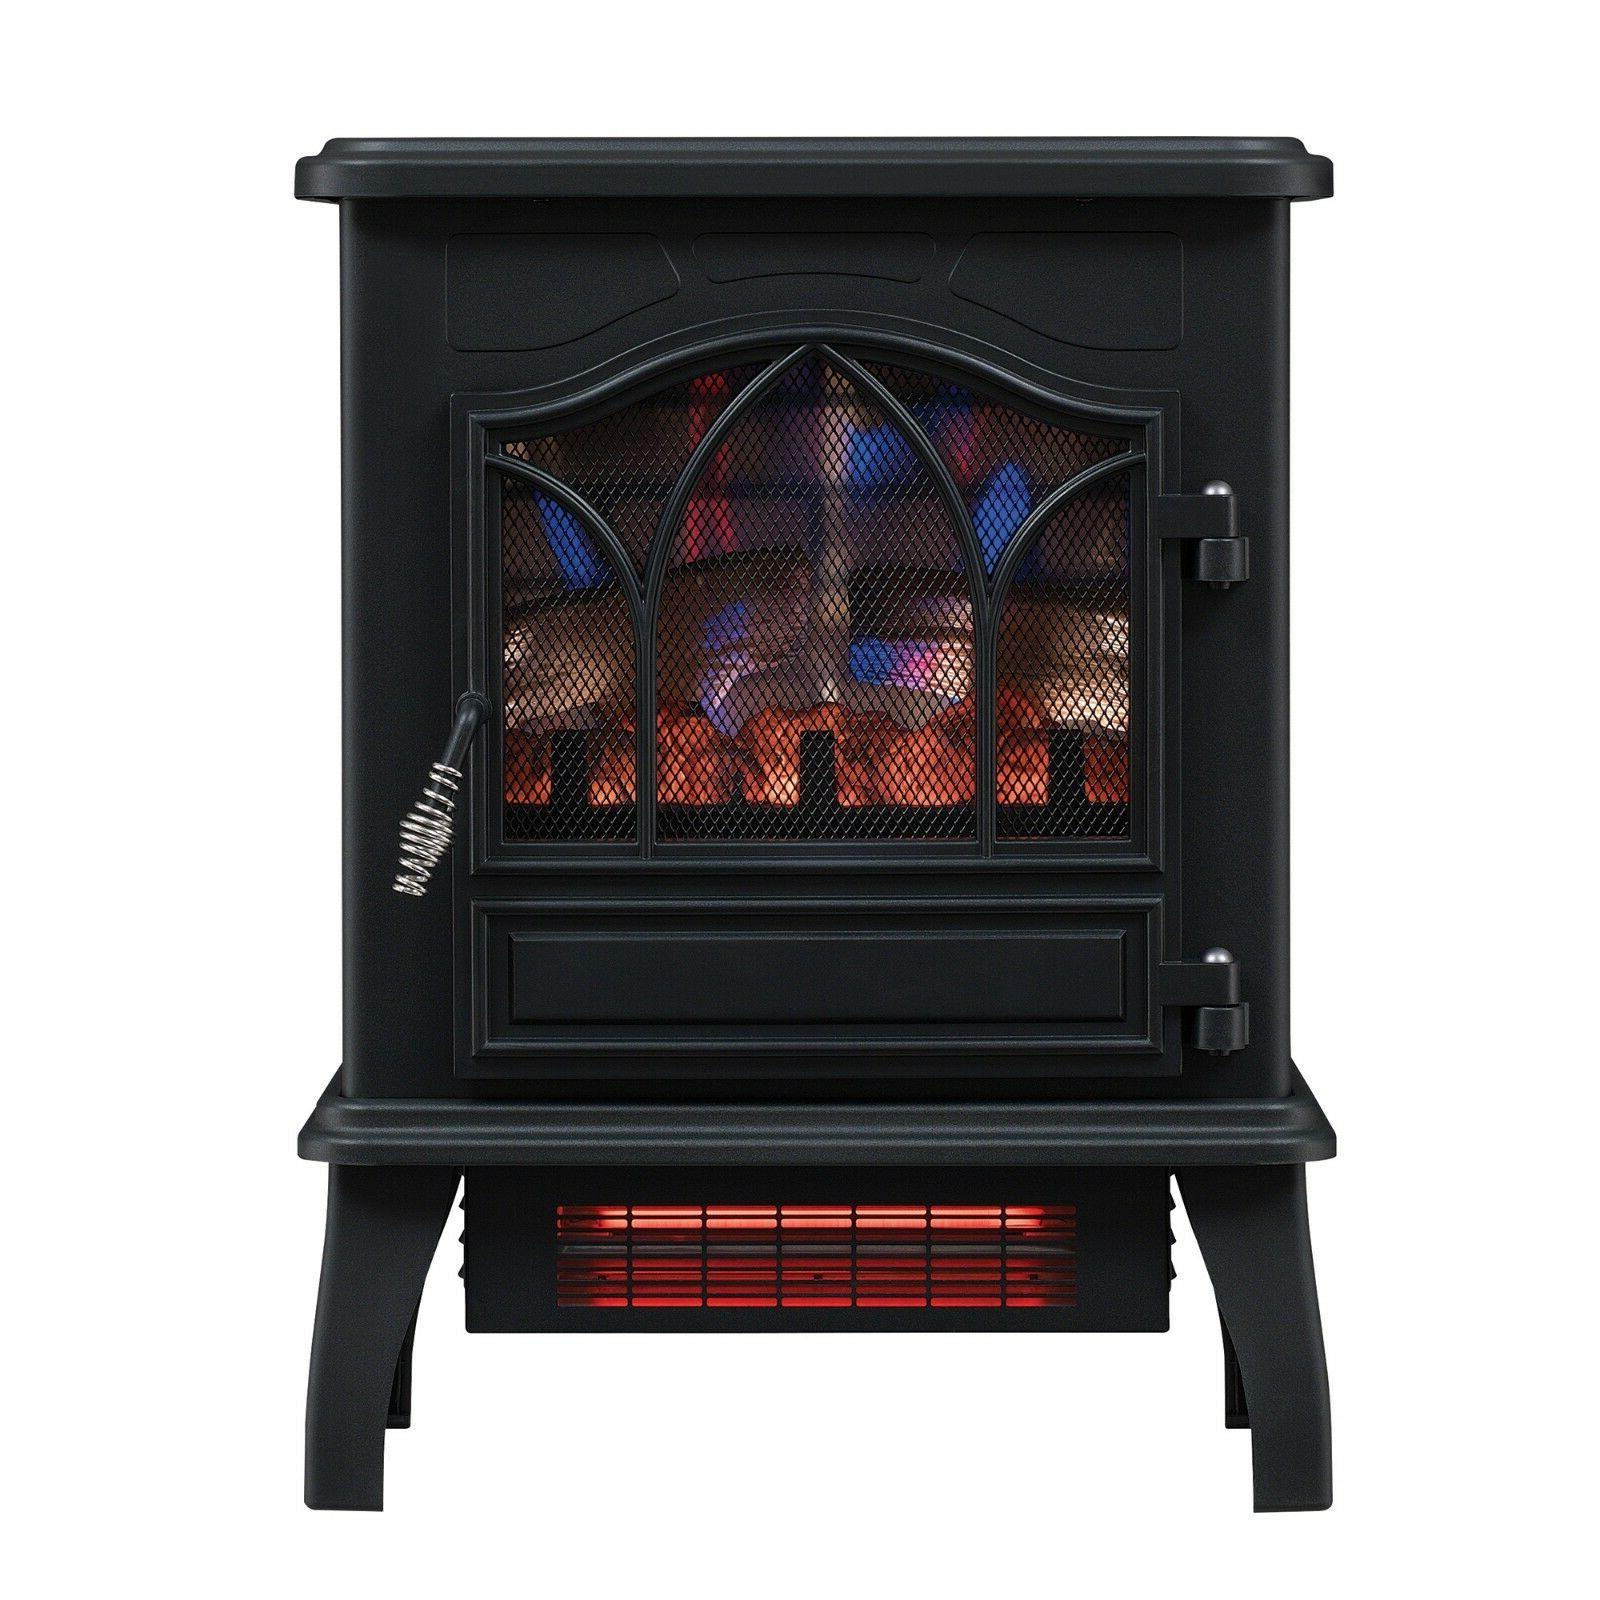 Home Chimney Free Infrared Quartz Electric Room Space Heater